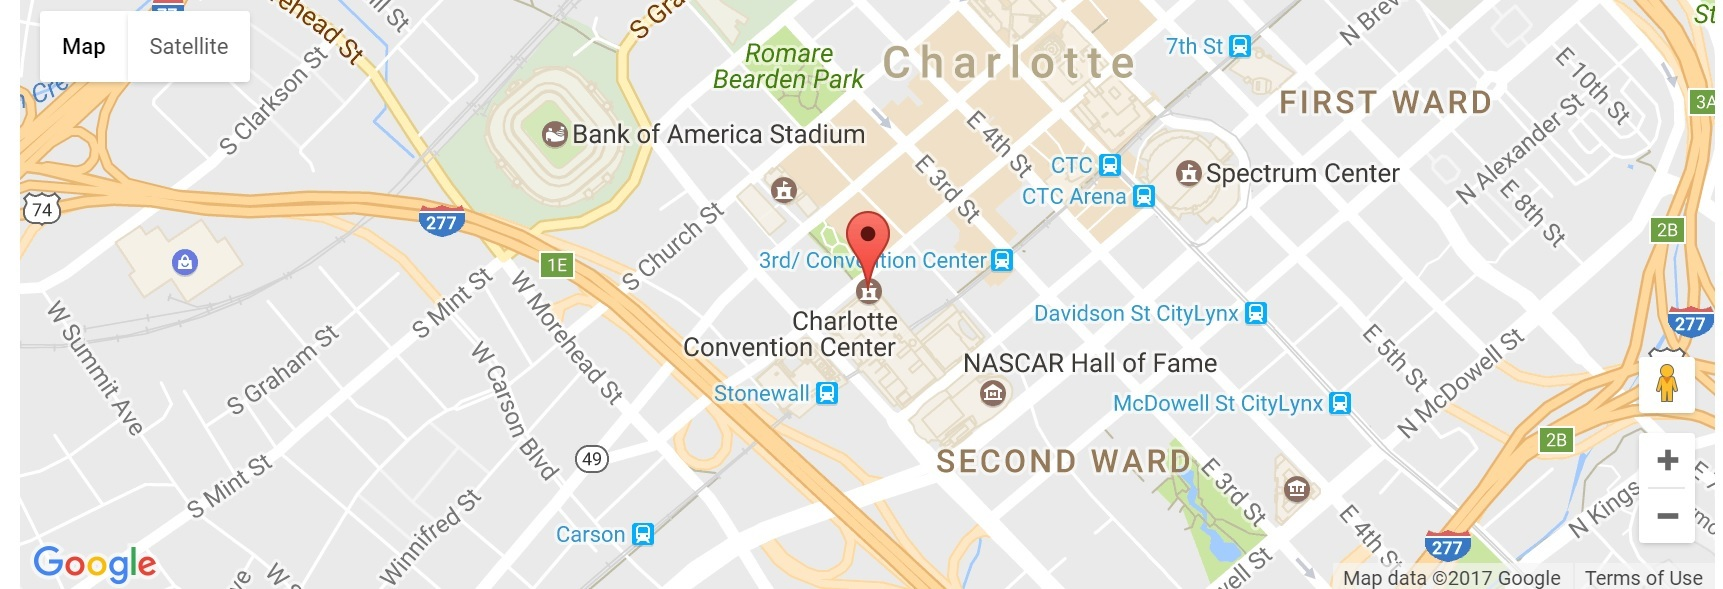 Driving Directions to the Charlotte Convention Center